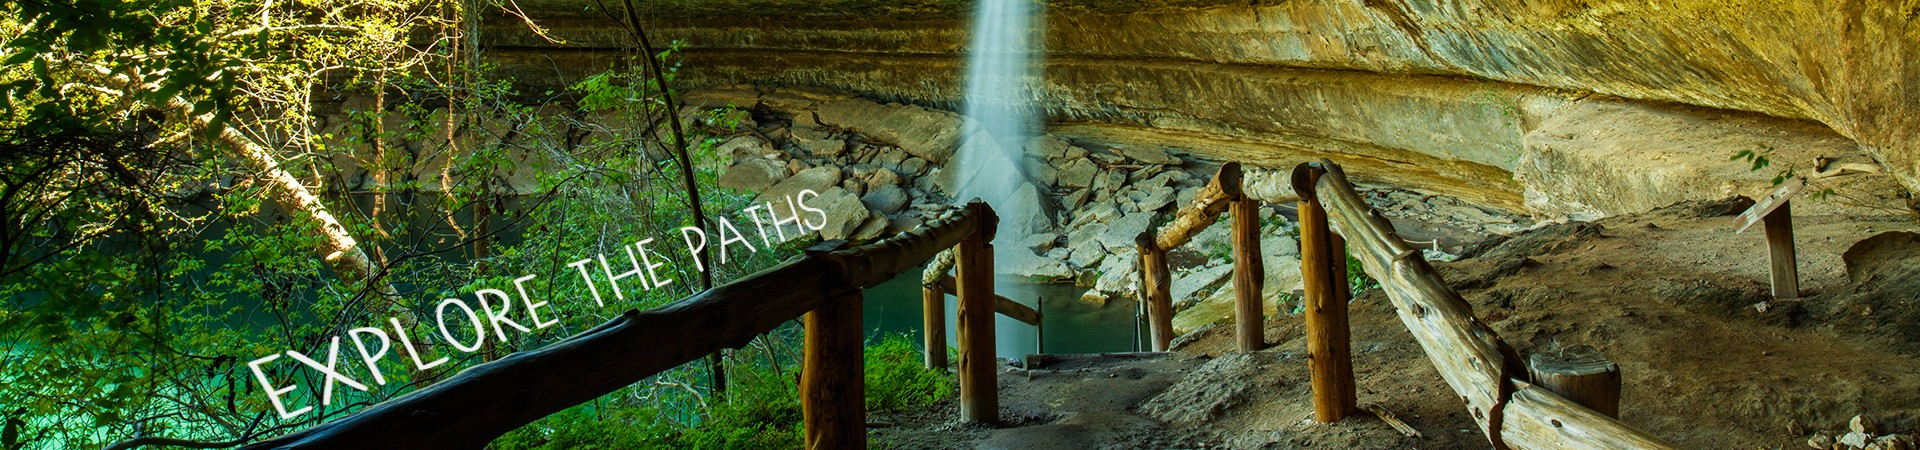 Explore the paths - walking trails at Hamilton's Pool in Texas